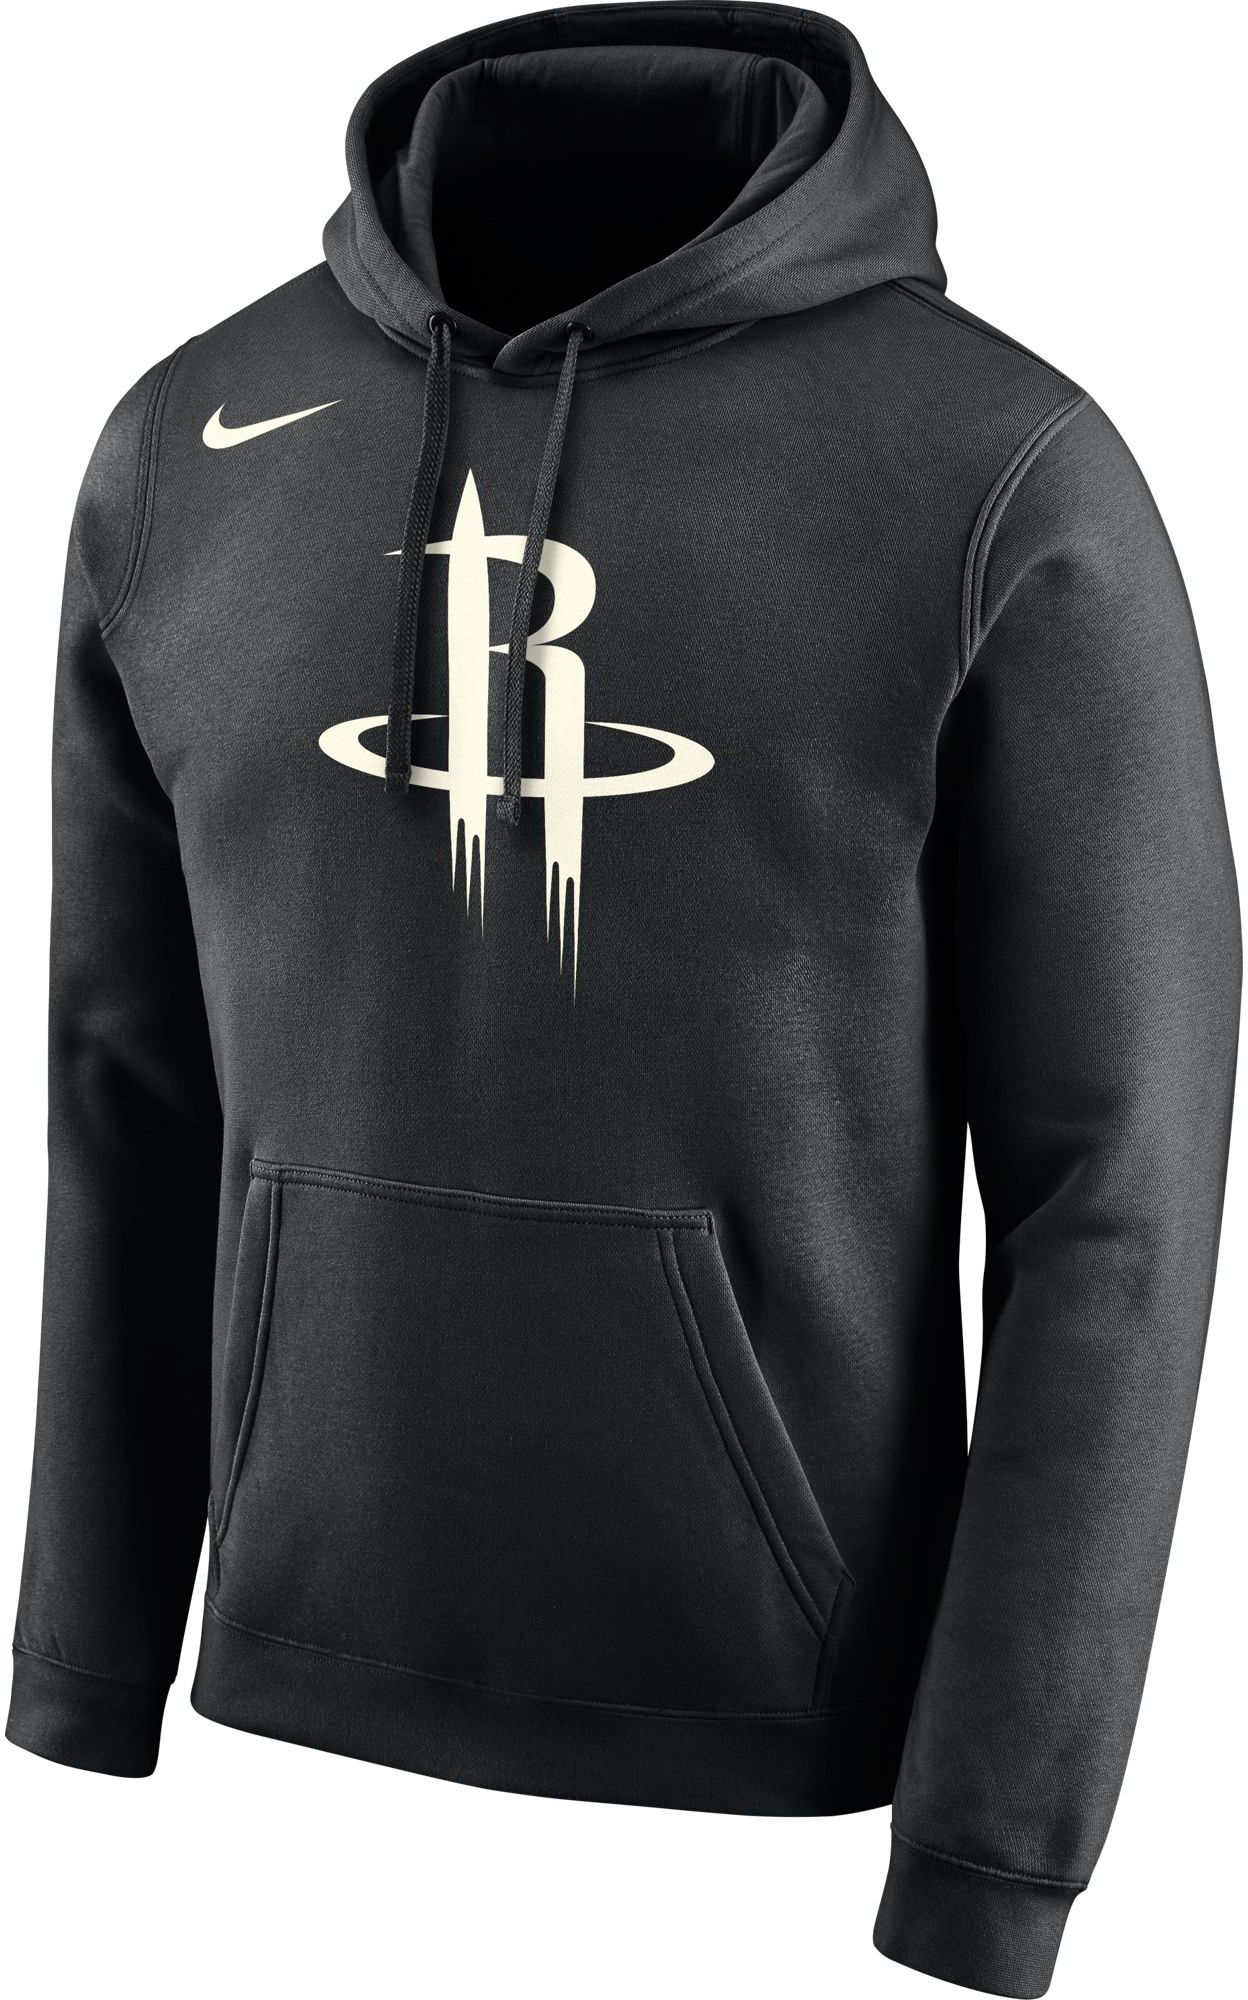 Nike mens houston rockets pullover hoodie products pinterest jpg 1248x2000  Hoodies men houston a52053758